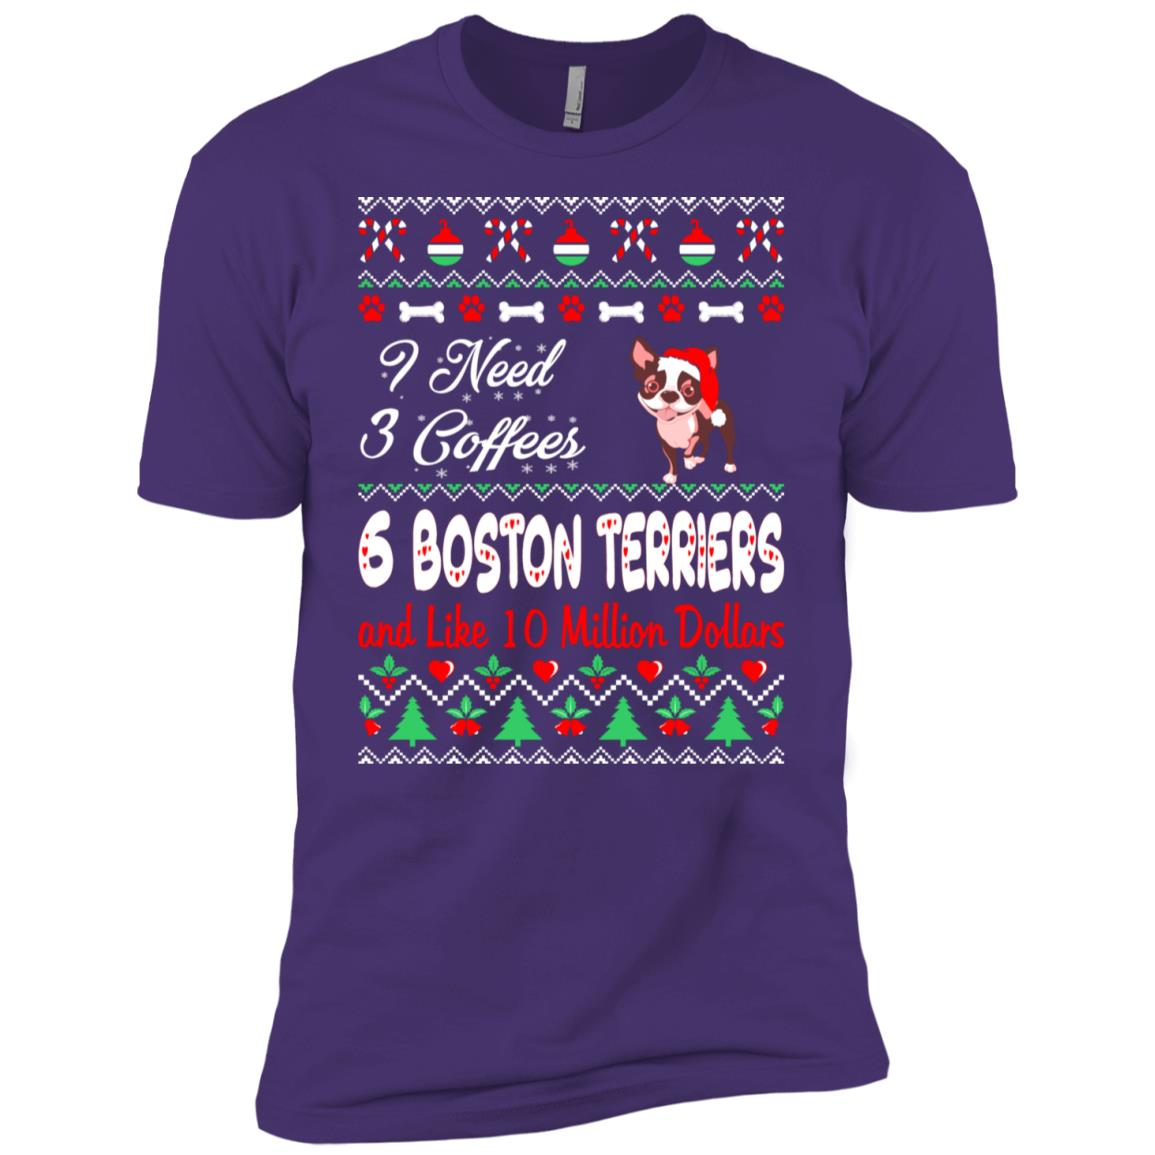 Need 3 Coffees 6 Boston Terriers Christmas Ugly Sweater Tee Men Short Sleeve T-Shirt